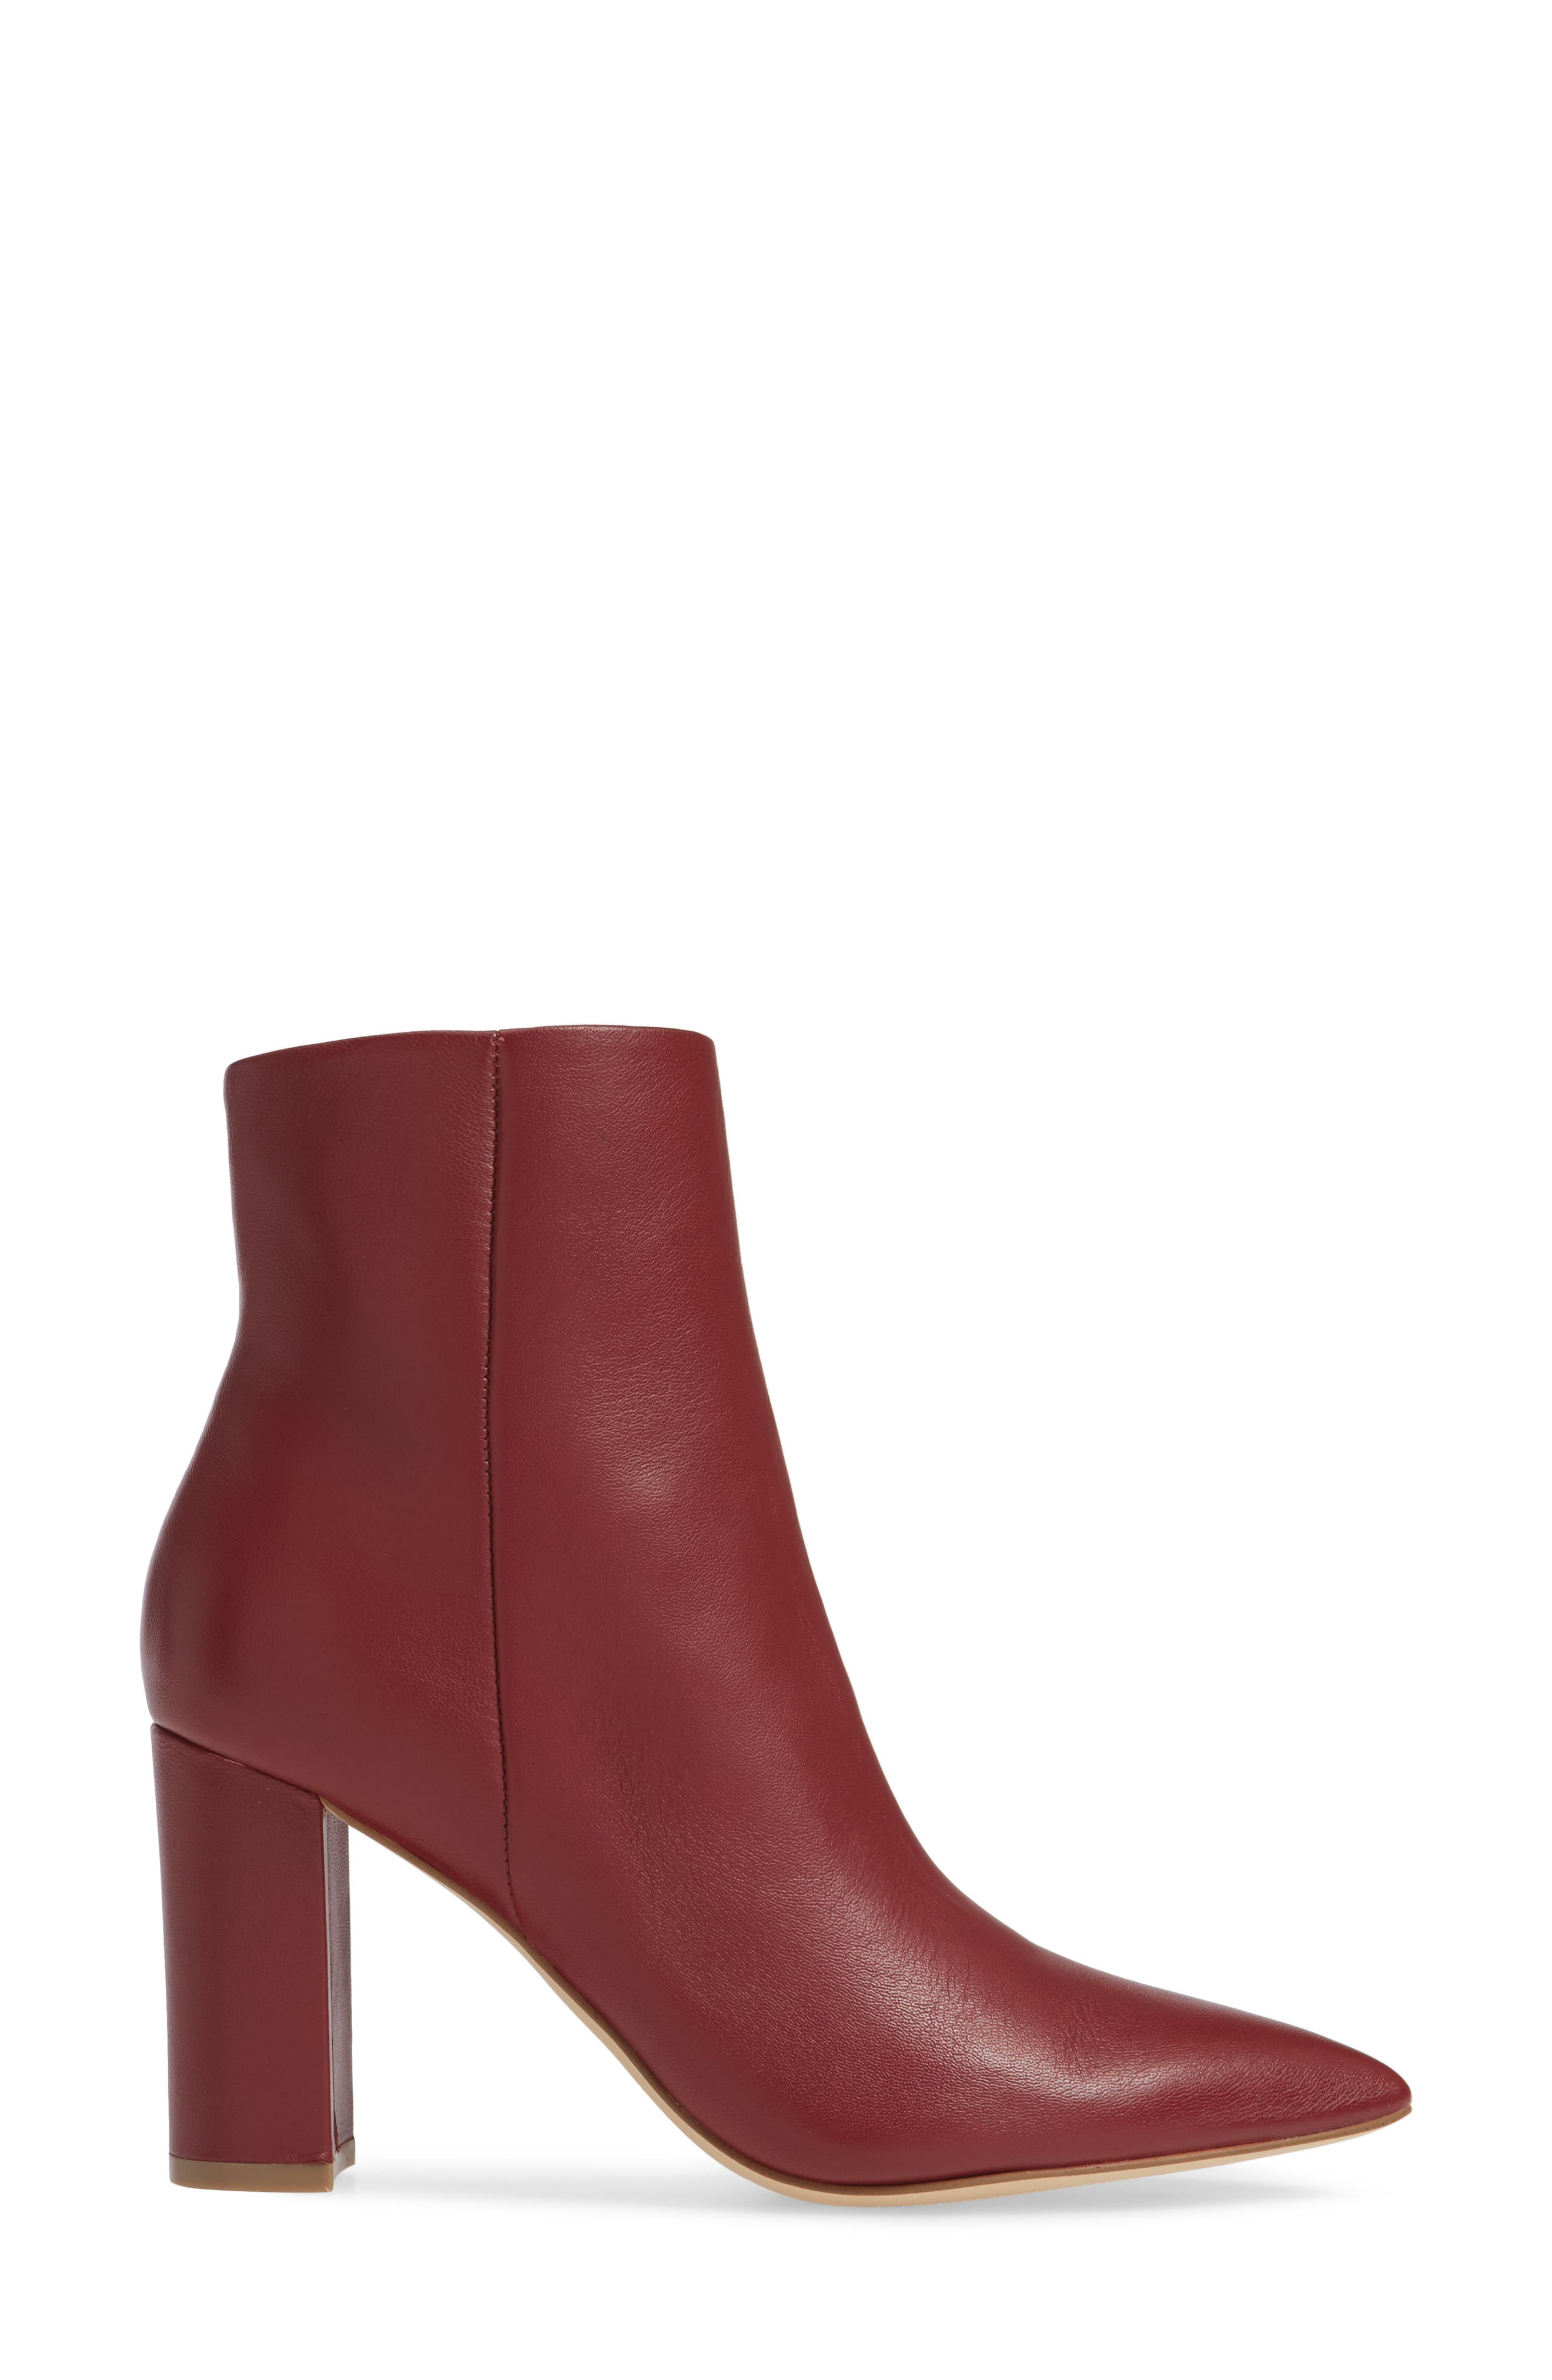 Ulani Pointy Toe Bootie,                             Alternate thumbnail 3, color,                             RED LEATHER